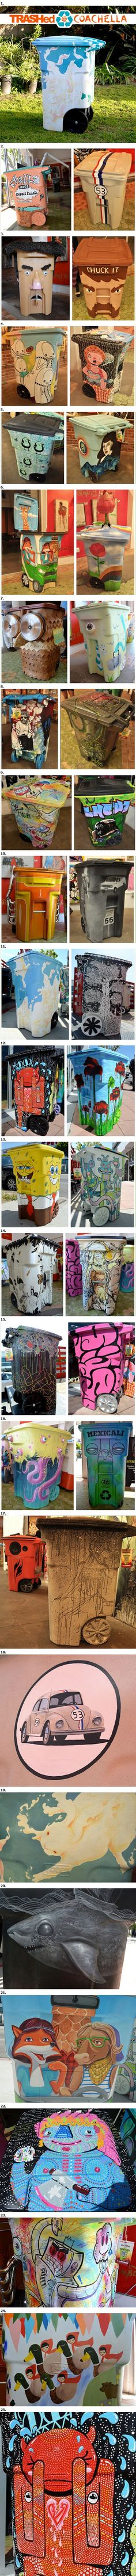 The TRASHed : Art Of Recycling - Art... LOVE this... but would I get in trouble for doing it to ours?